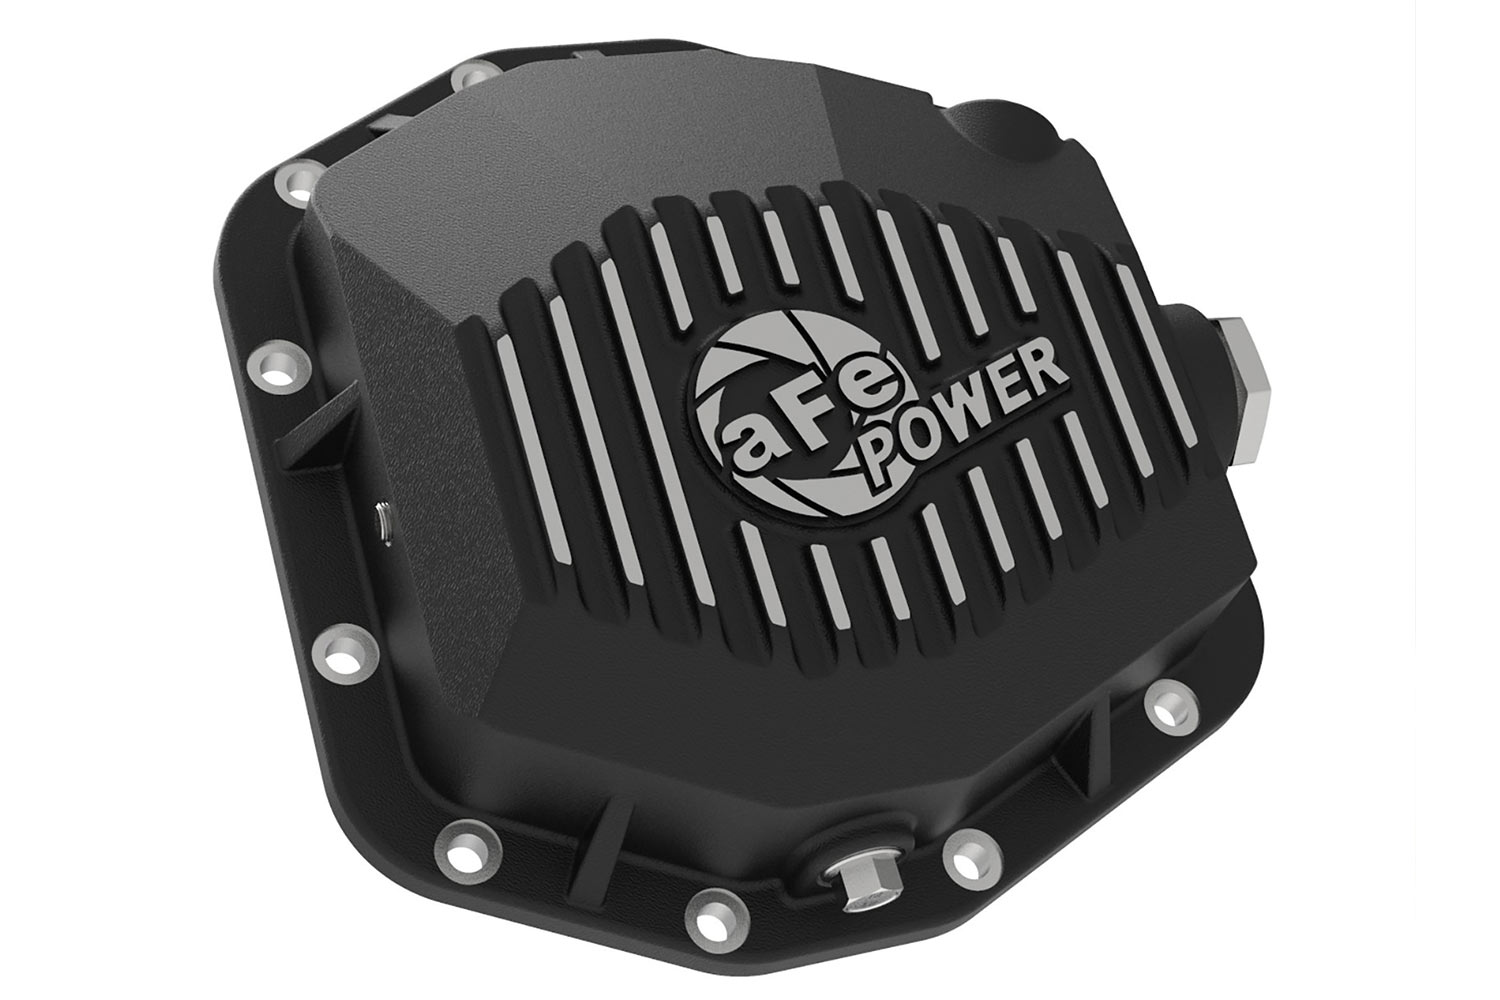 aFe Ranger Rear Differential Cover Black Street Series w/ Machined Fins (2019)